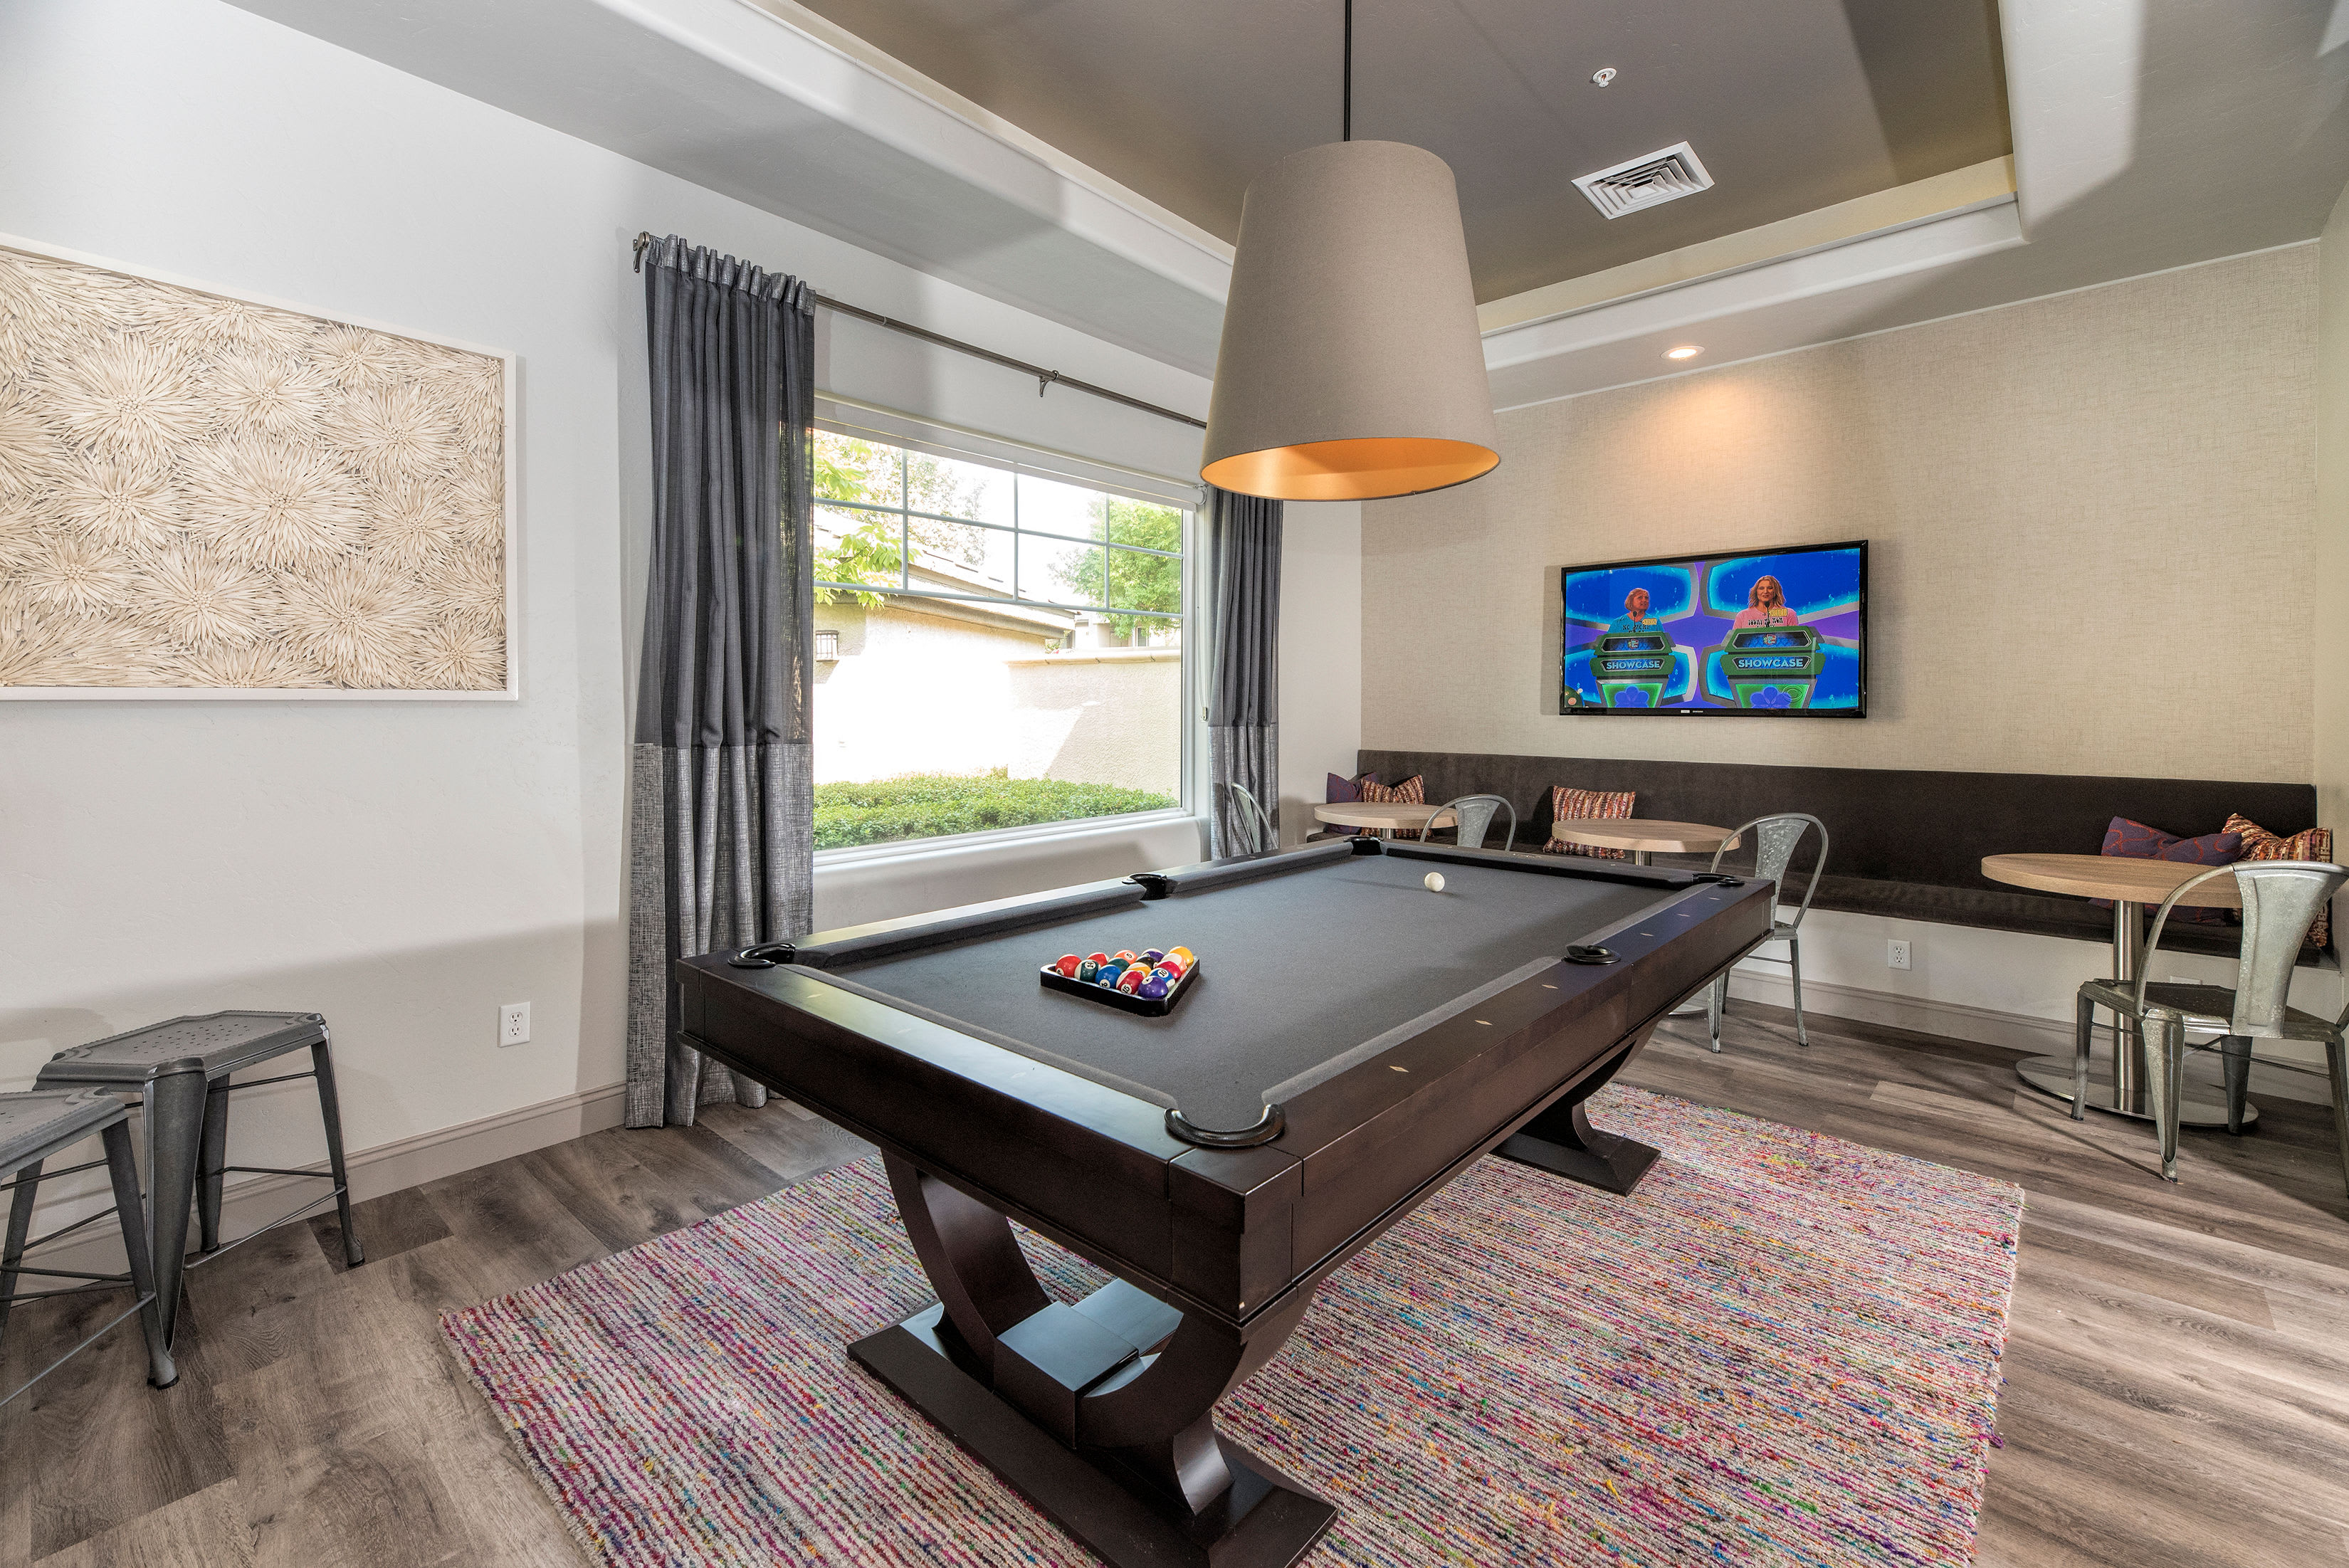 View photos of our luxurious property at The Artisan Apartment Homes in Sacramento, California